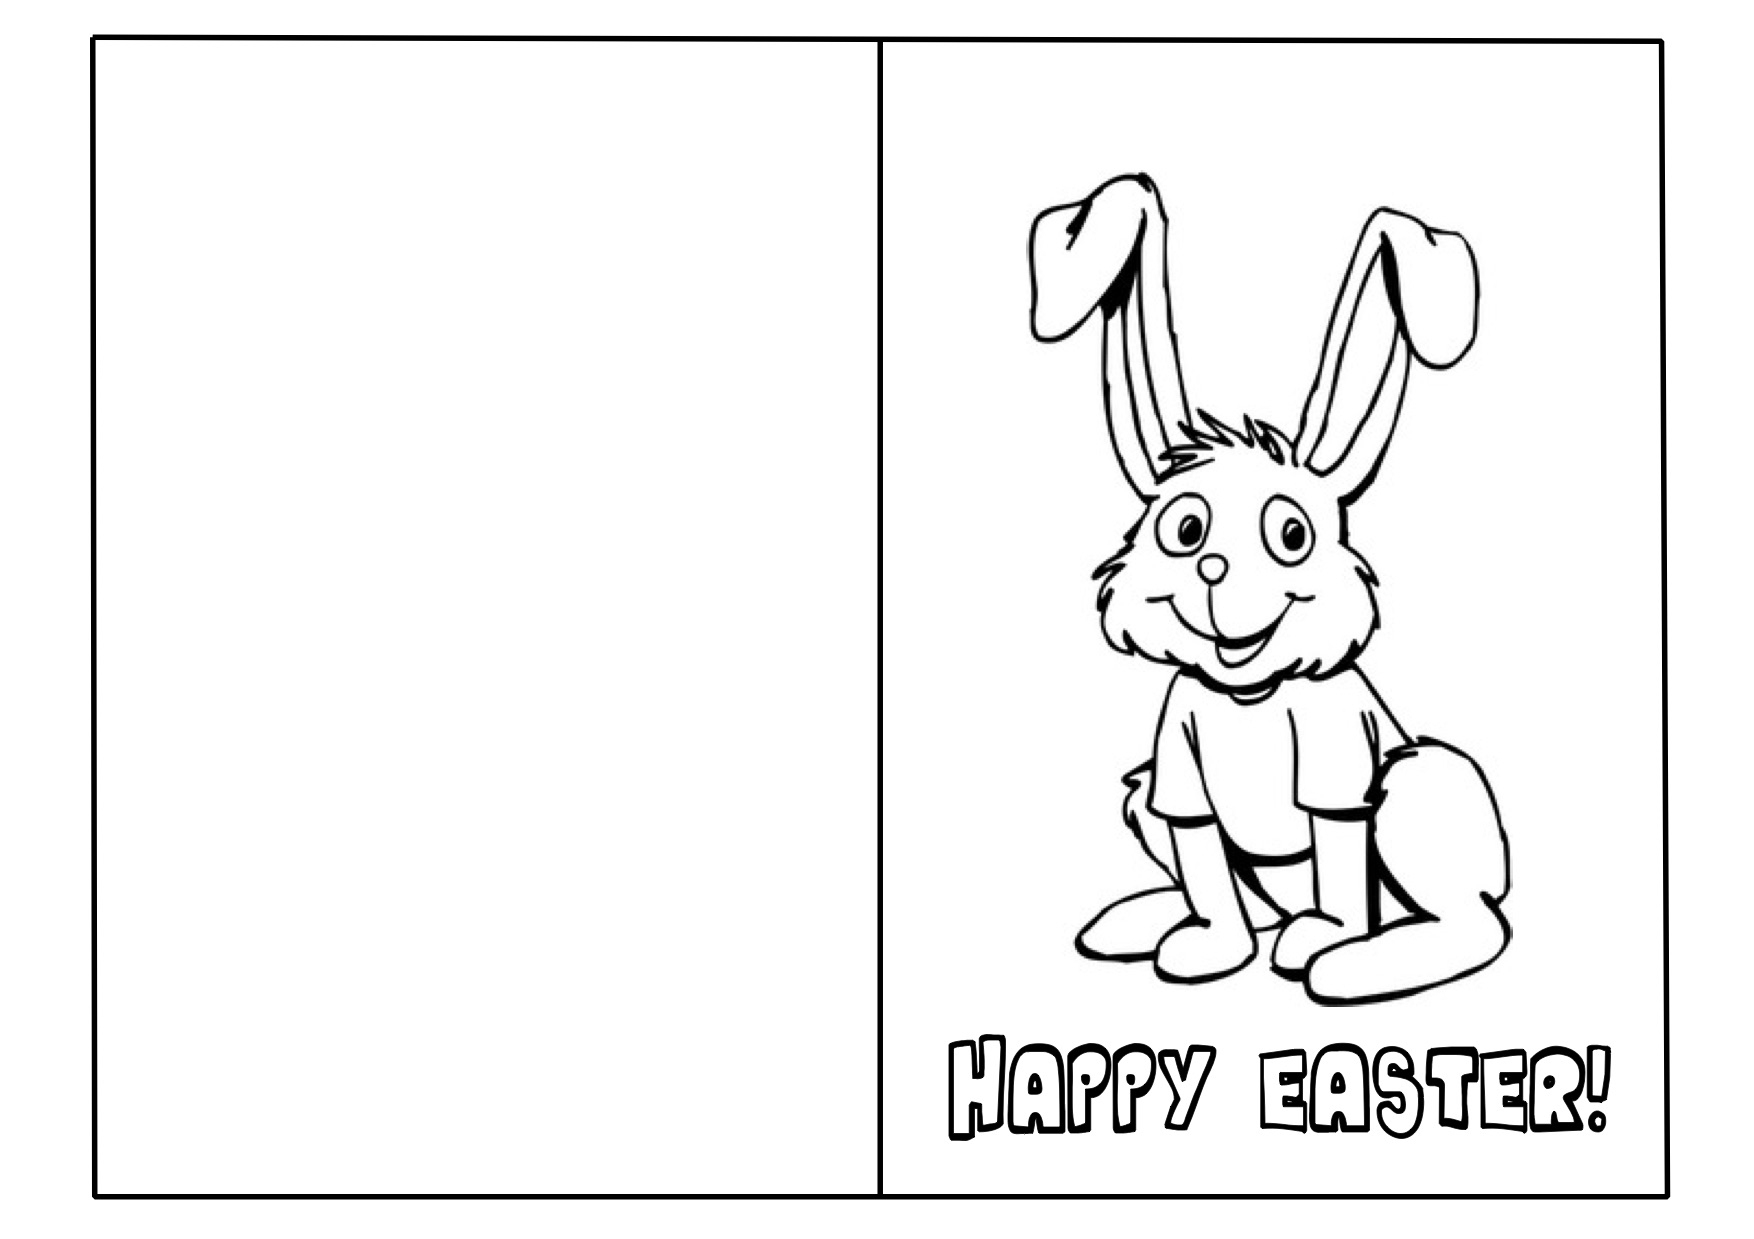 32 Free Printable Easter Cards | Kittybabylove - Free Printable Easter Greeting Cards